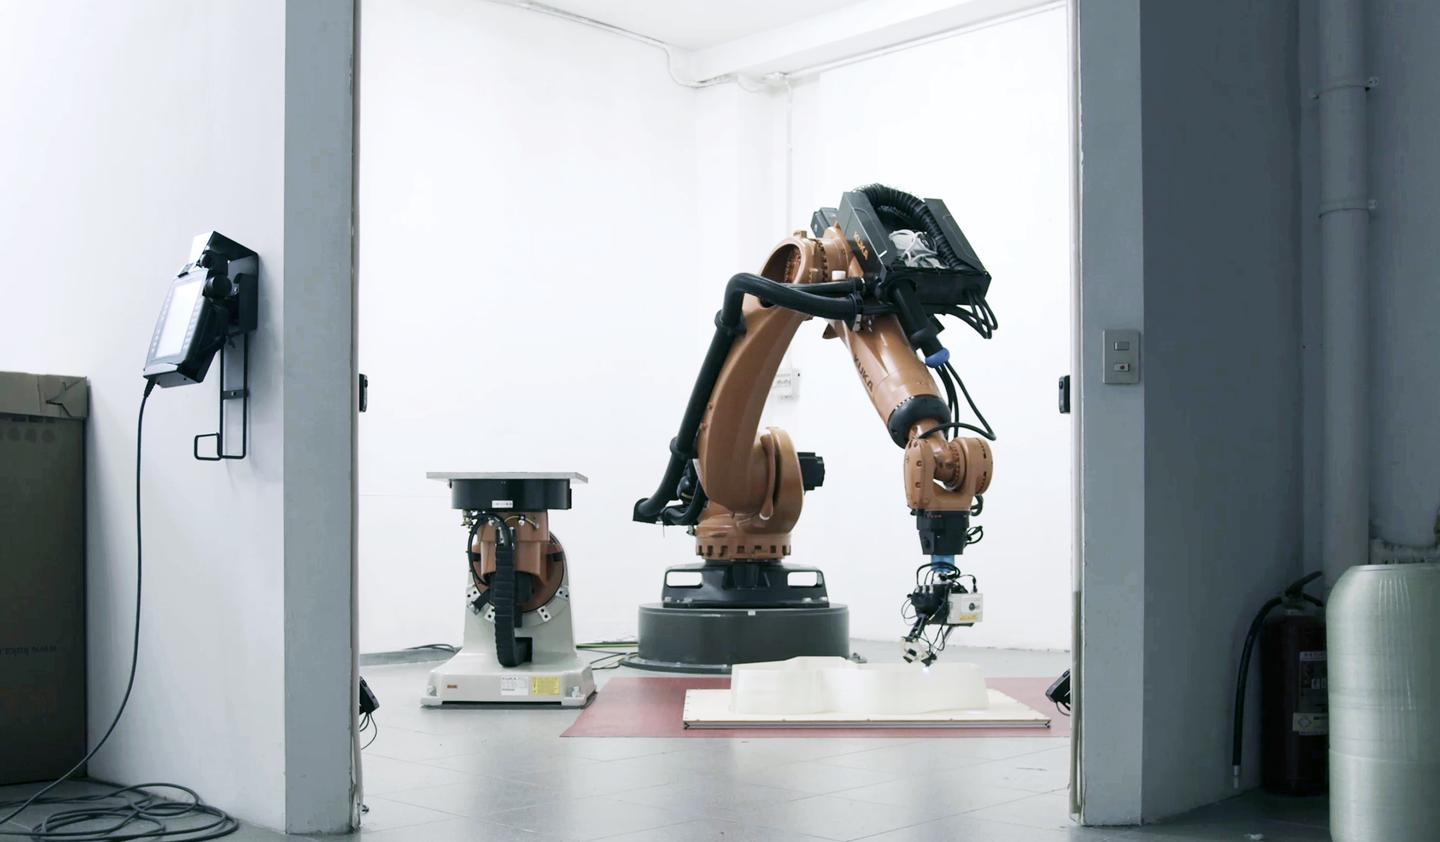 The MAMBO was printed using two Kuka Quantec High Accuracy robots